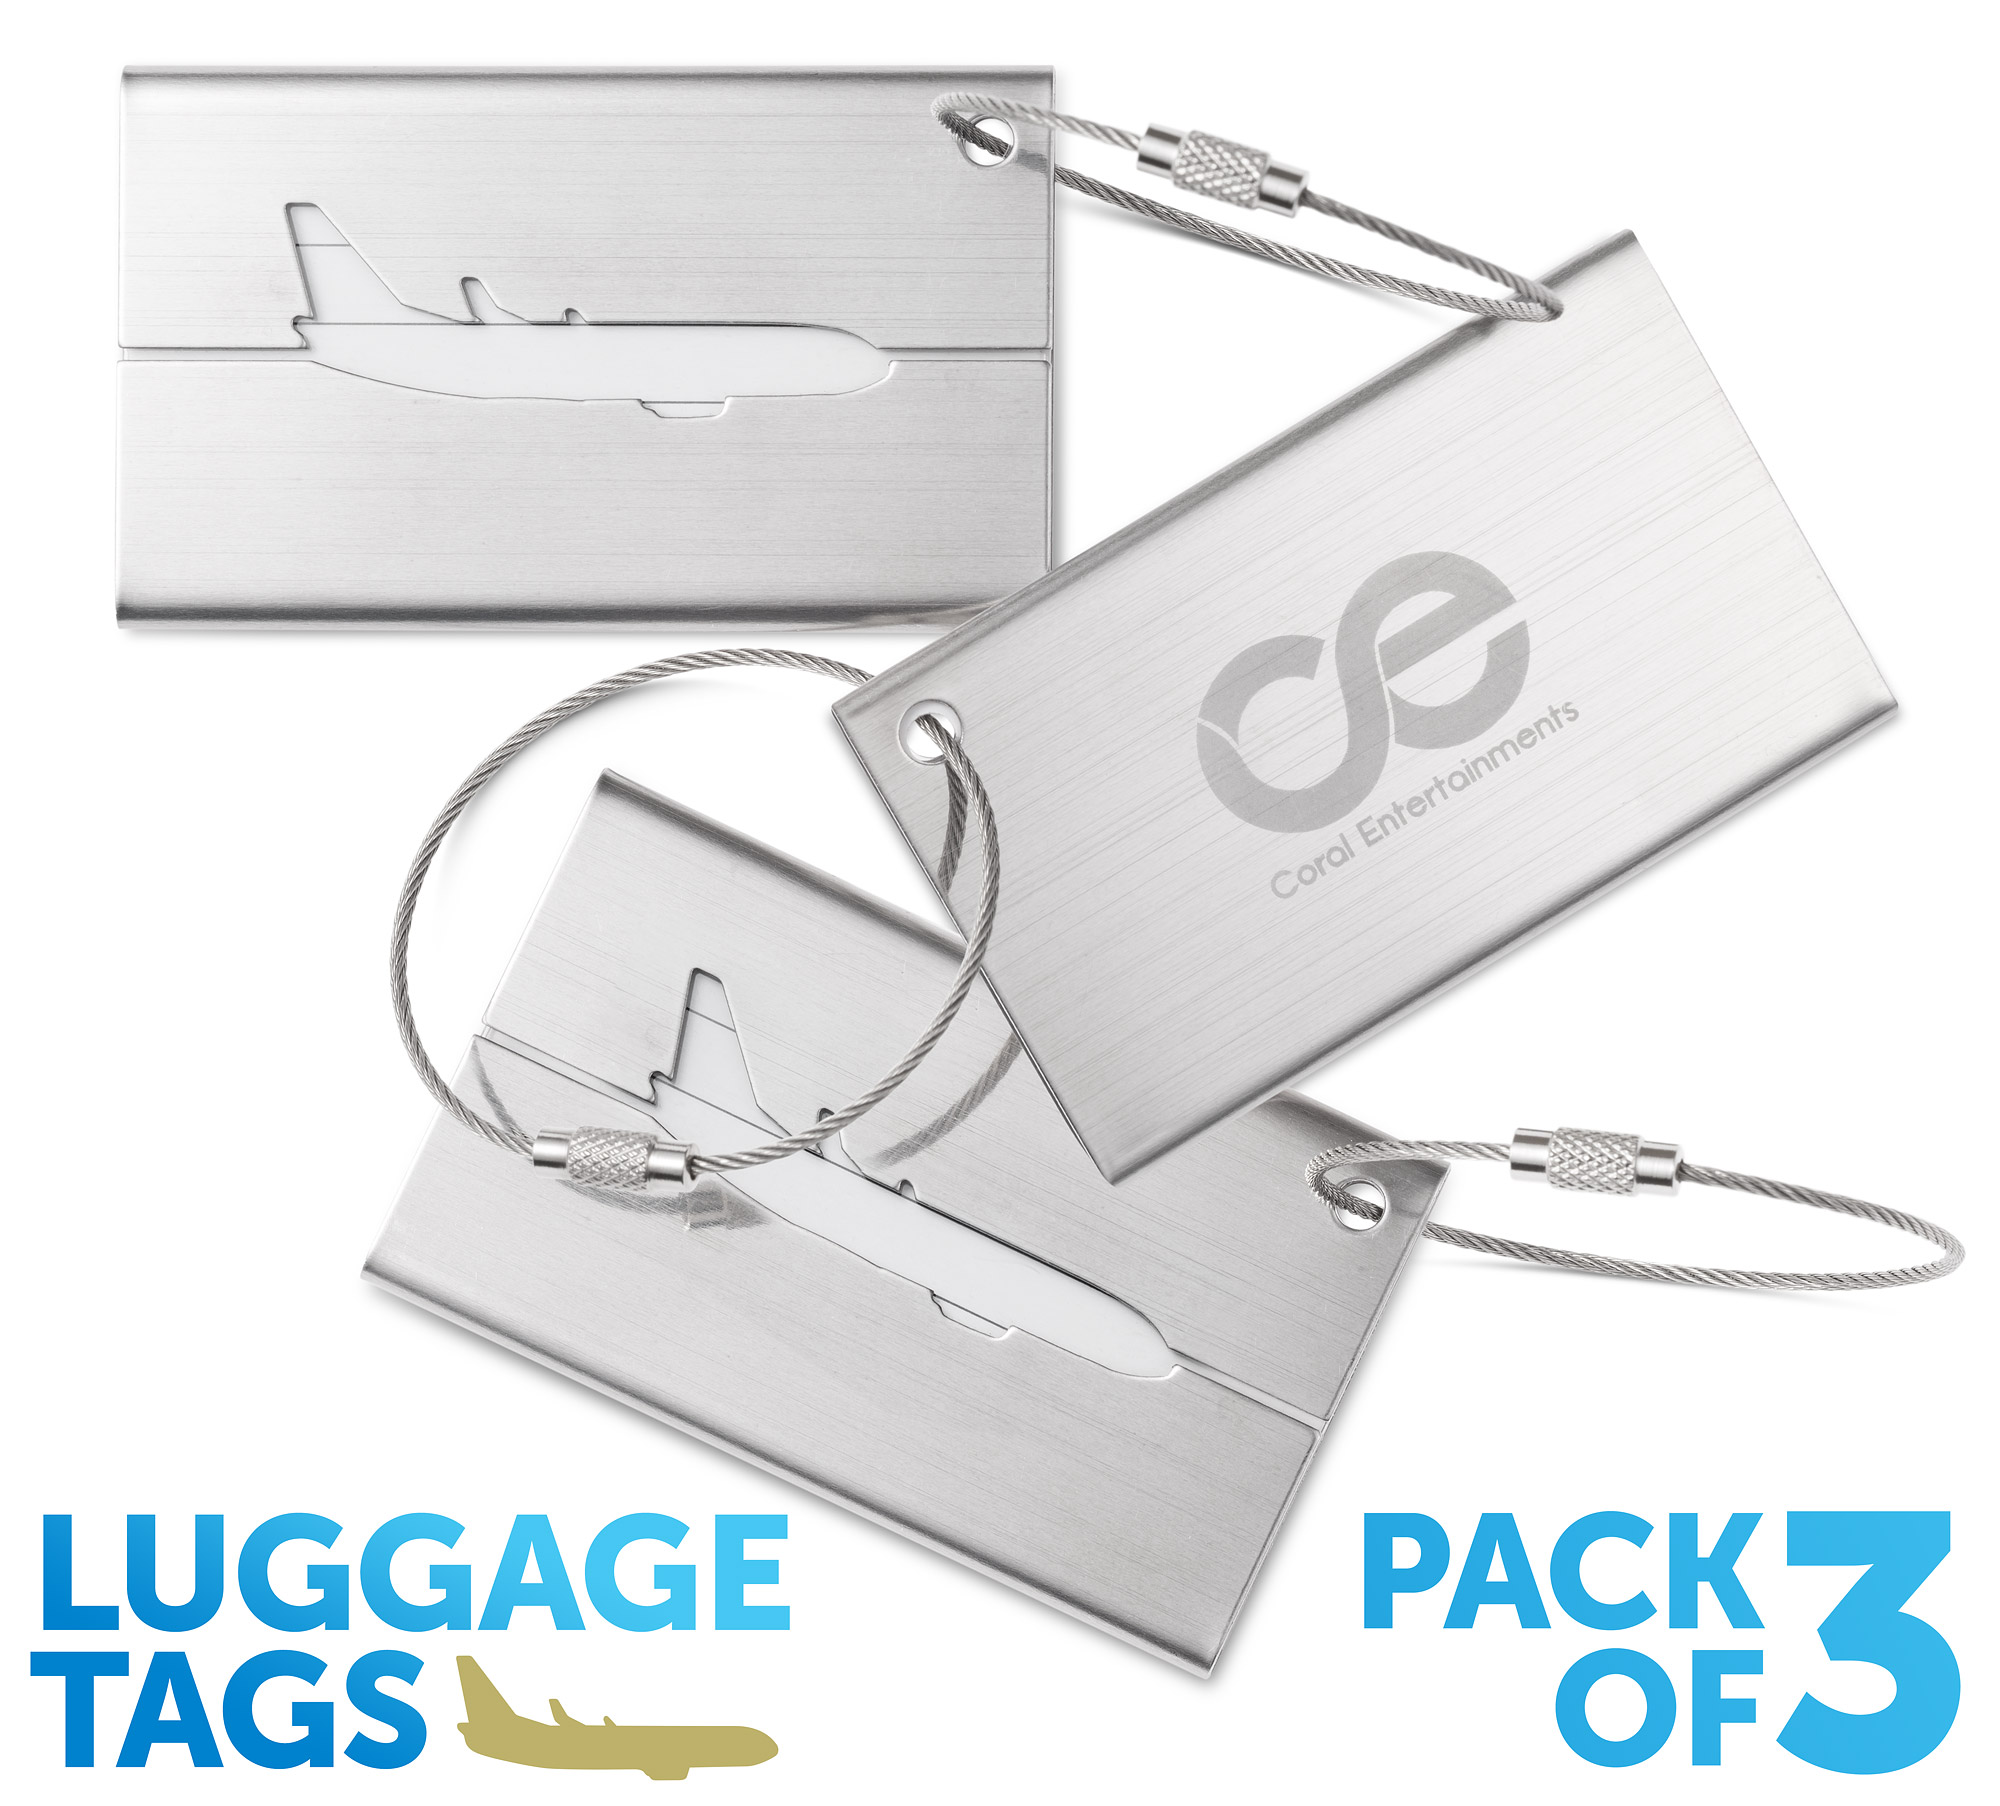 Luggage tags, id tags, travel tags C